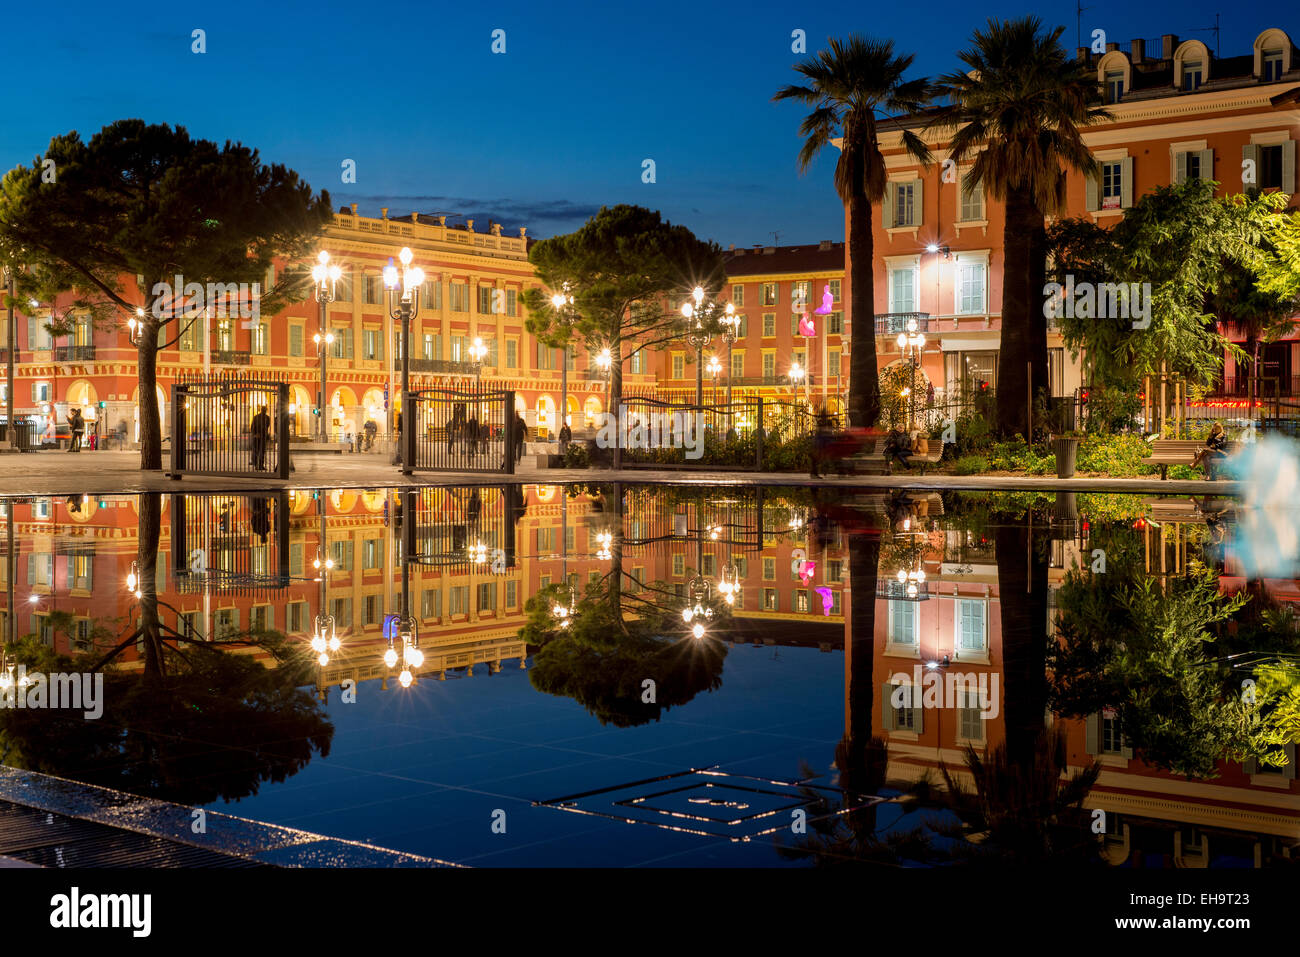 water area with fountains, mist and then calmness which creates reflections on the still water, Place Massena, Nice, - Stock Image